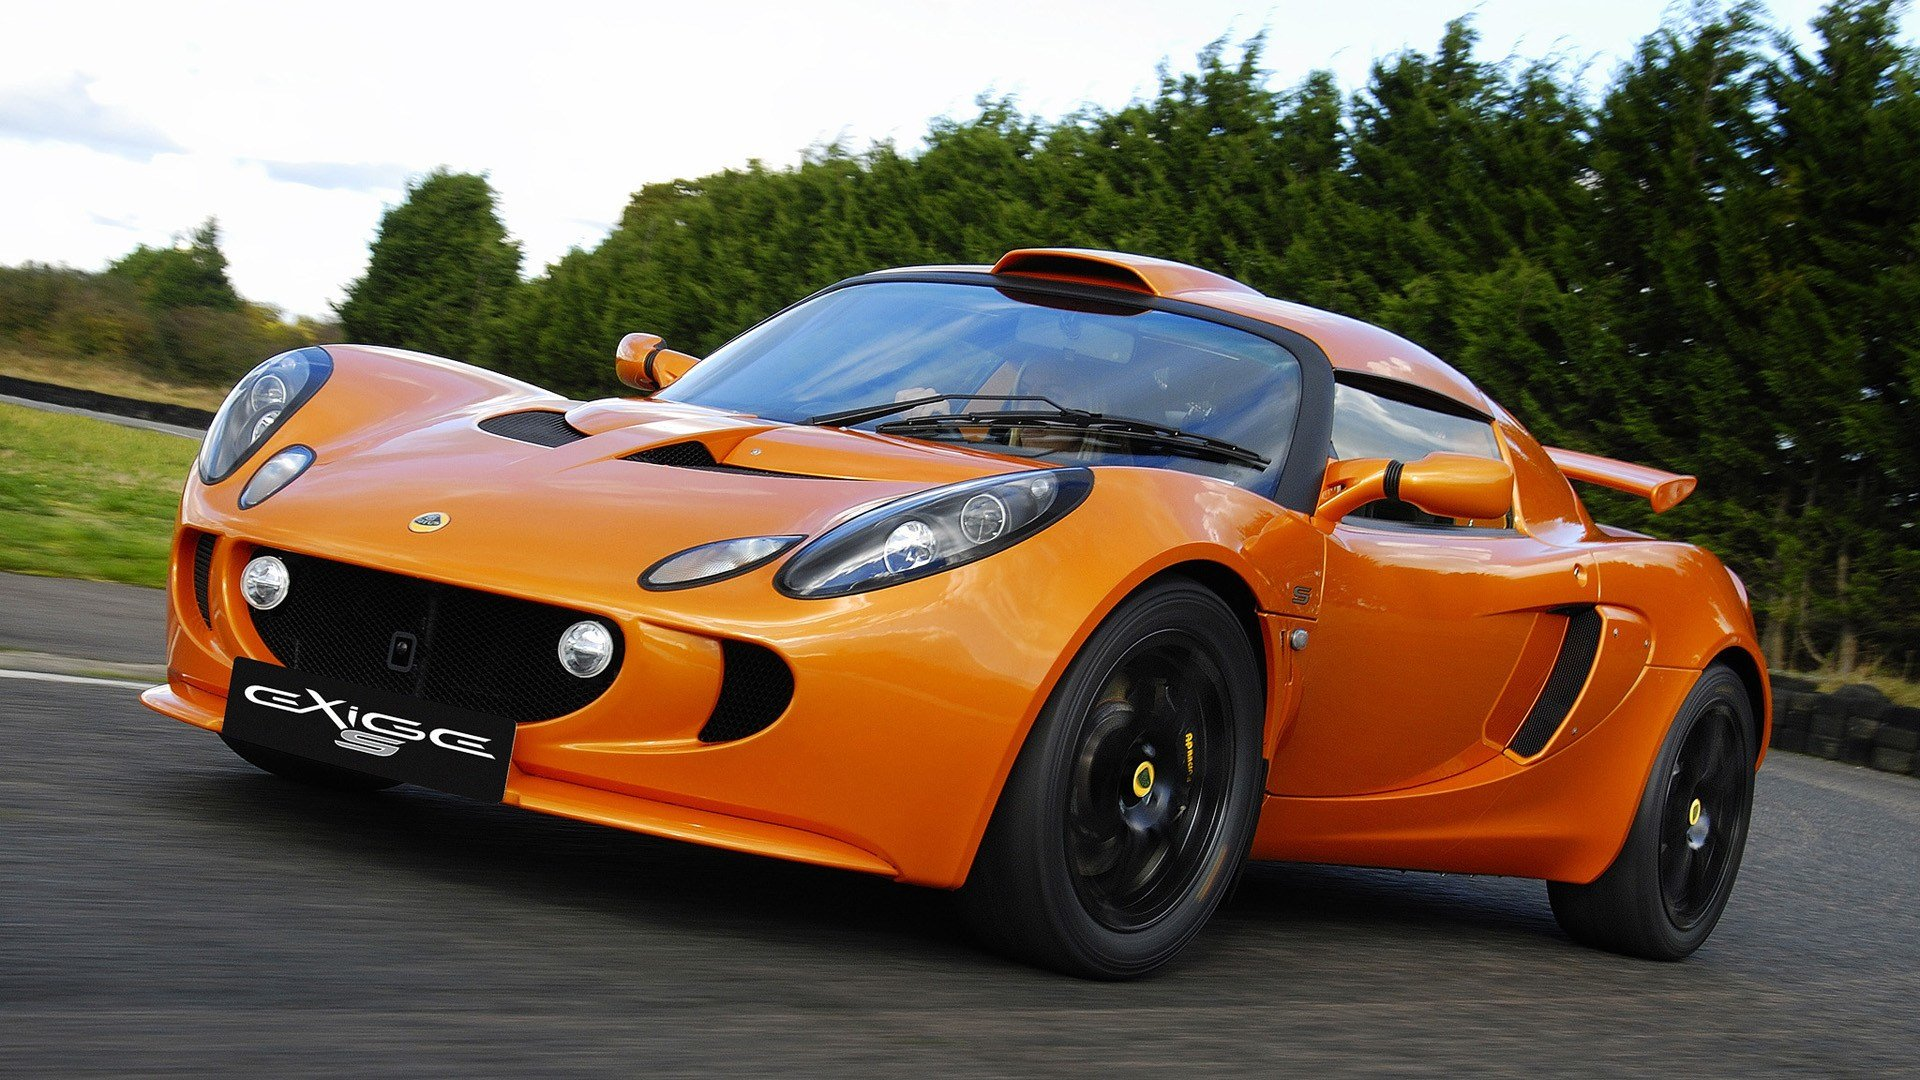 Latest 2006 Lotus Exige S Wallpapers Hd Images Wsupercars Free Download